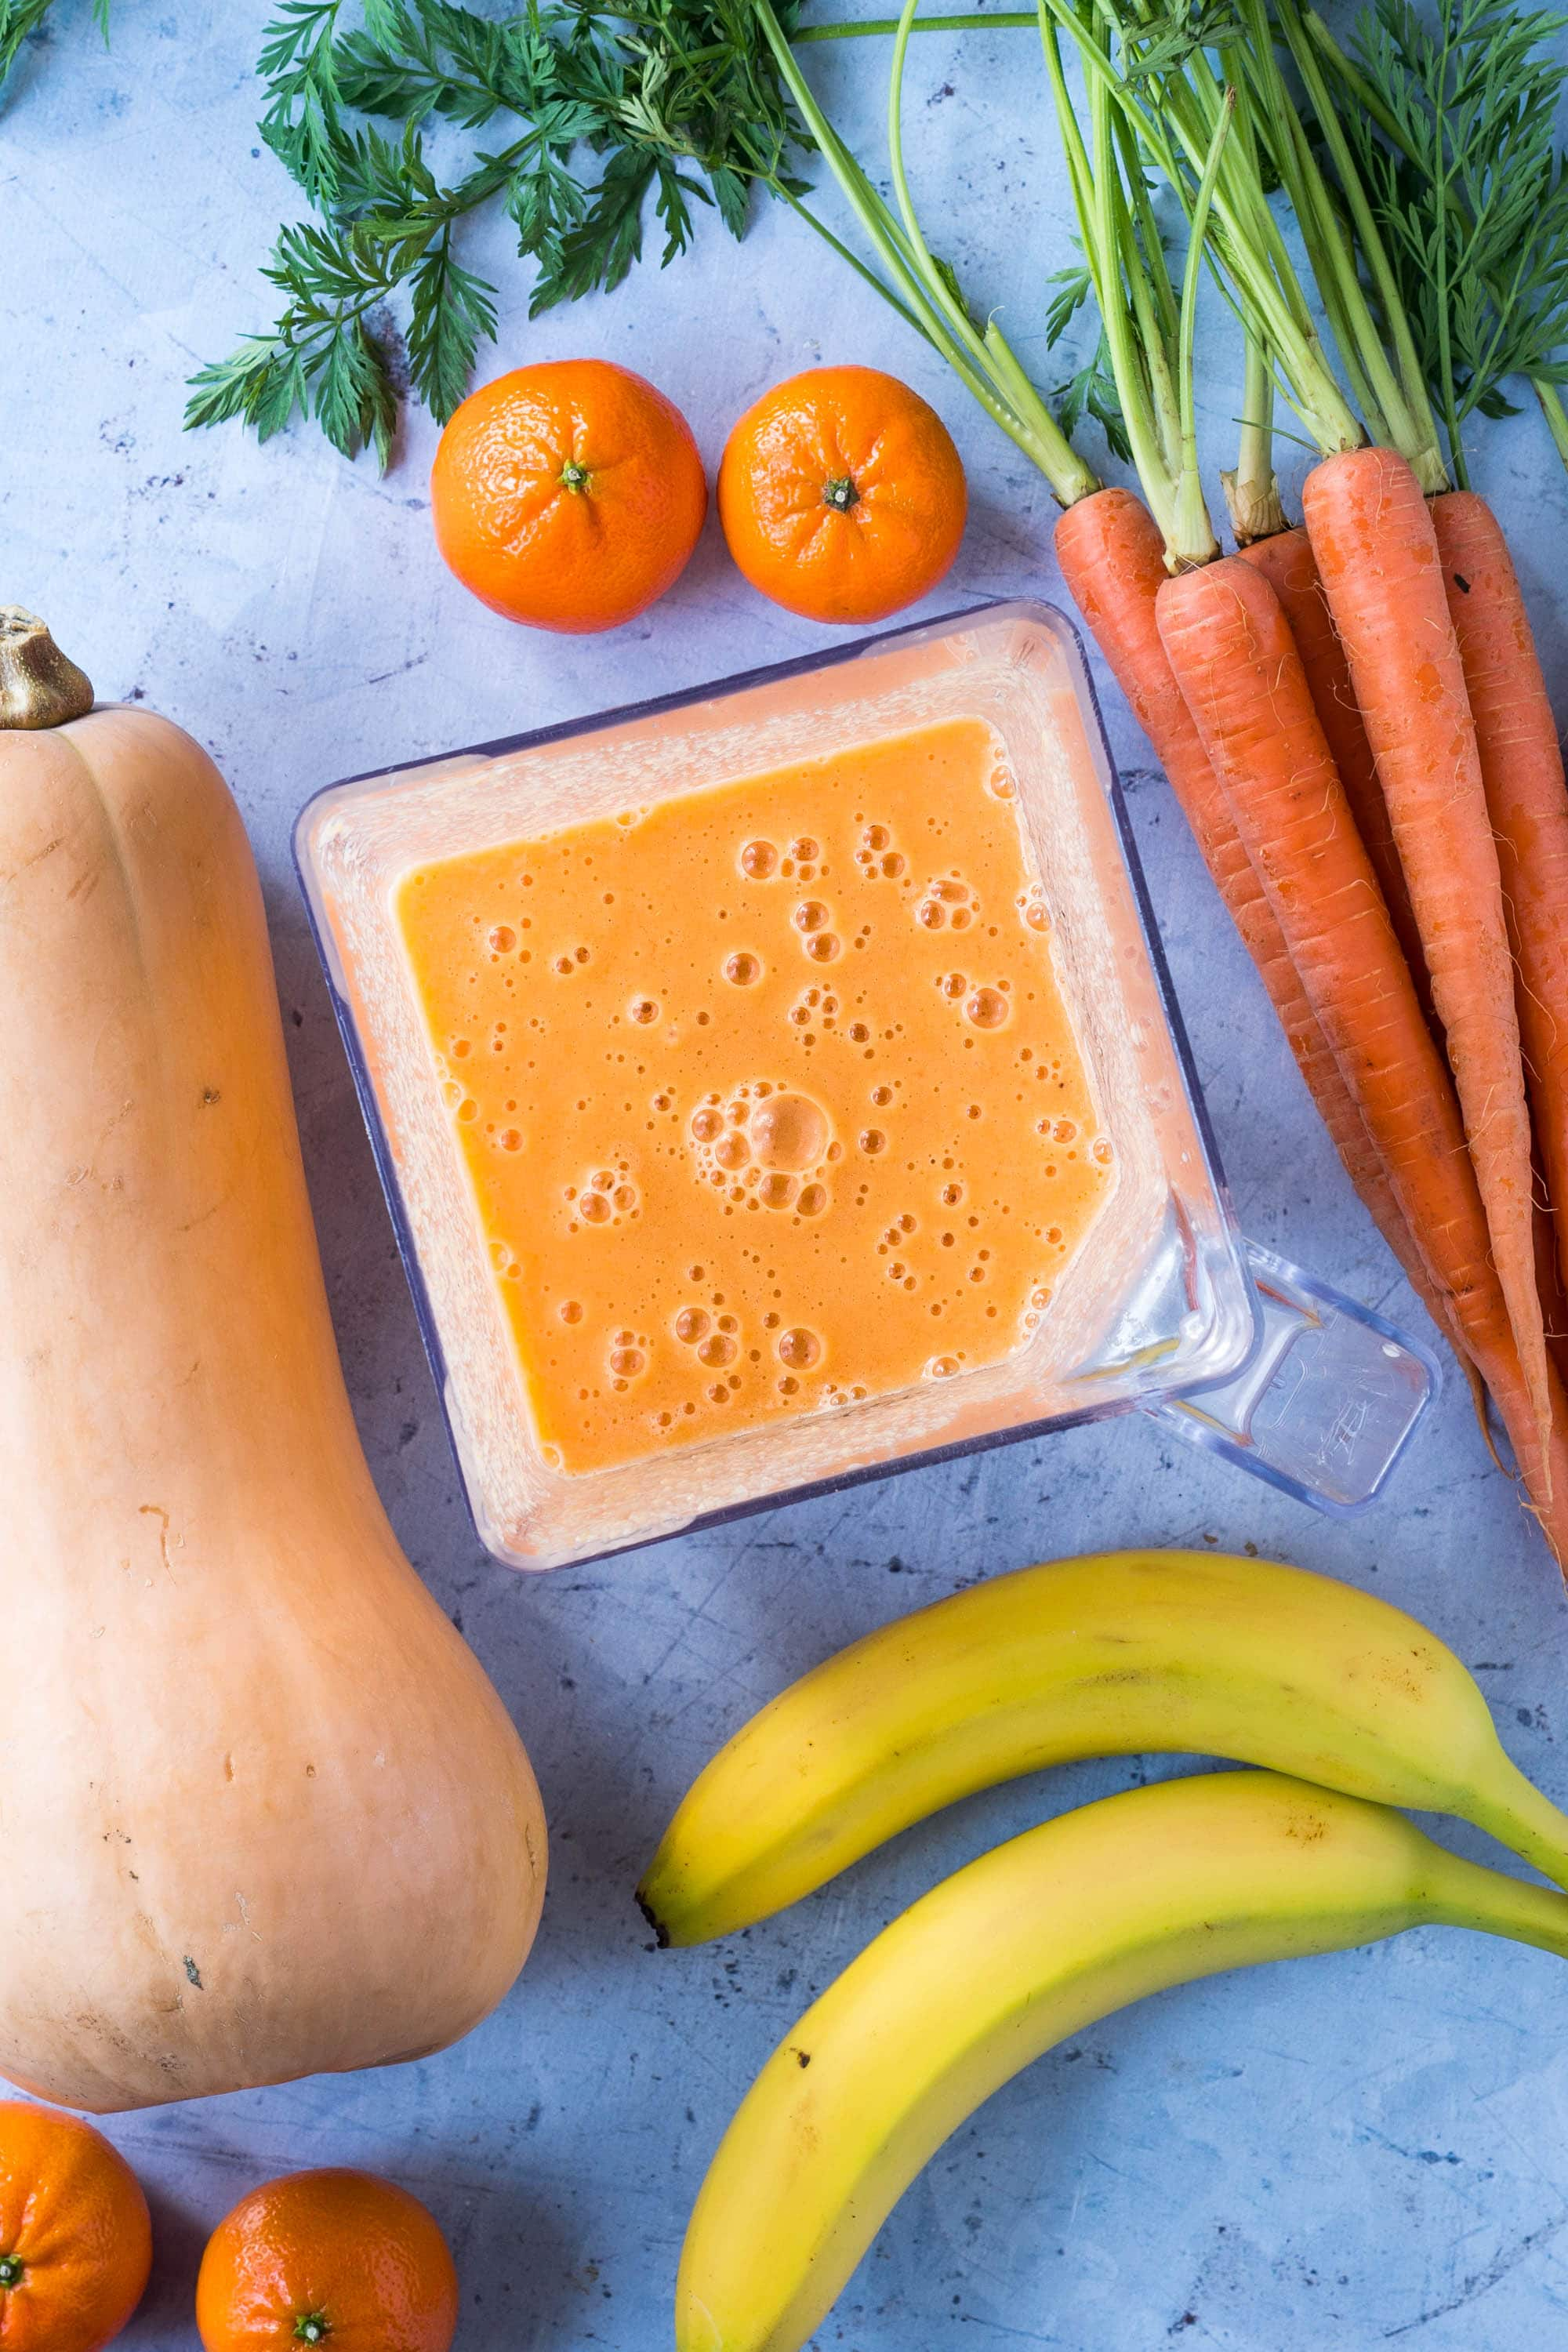 Tangerines, carrots, butternut squash, bananas in an orange creamsicle smoothie